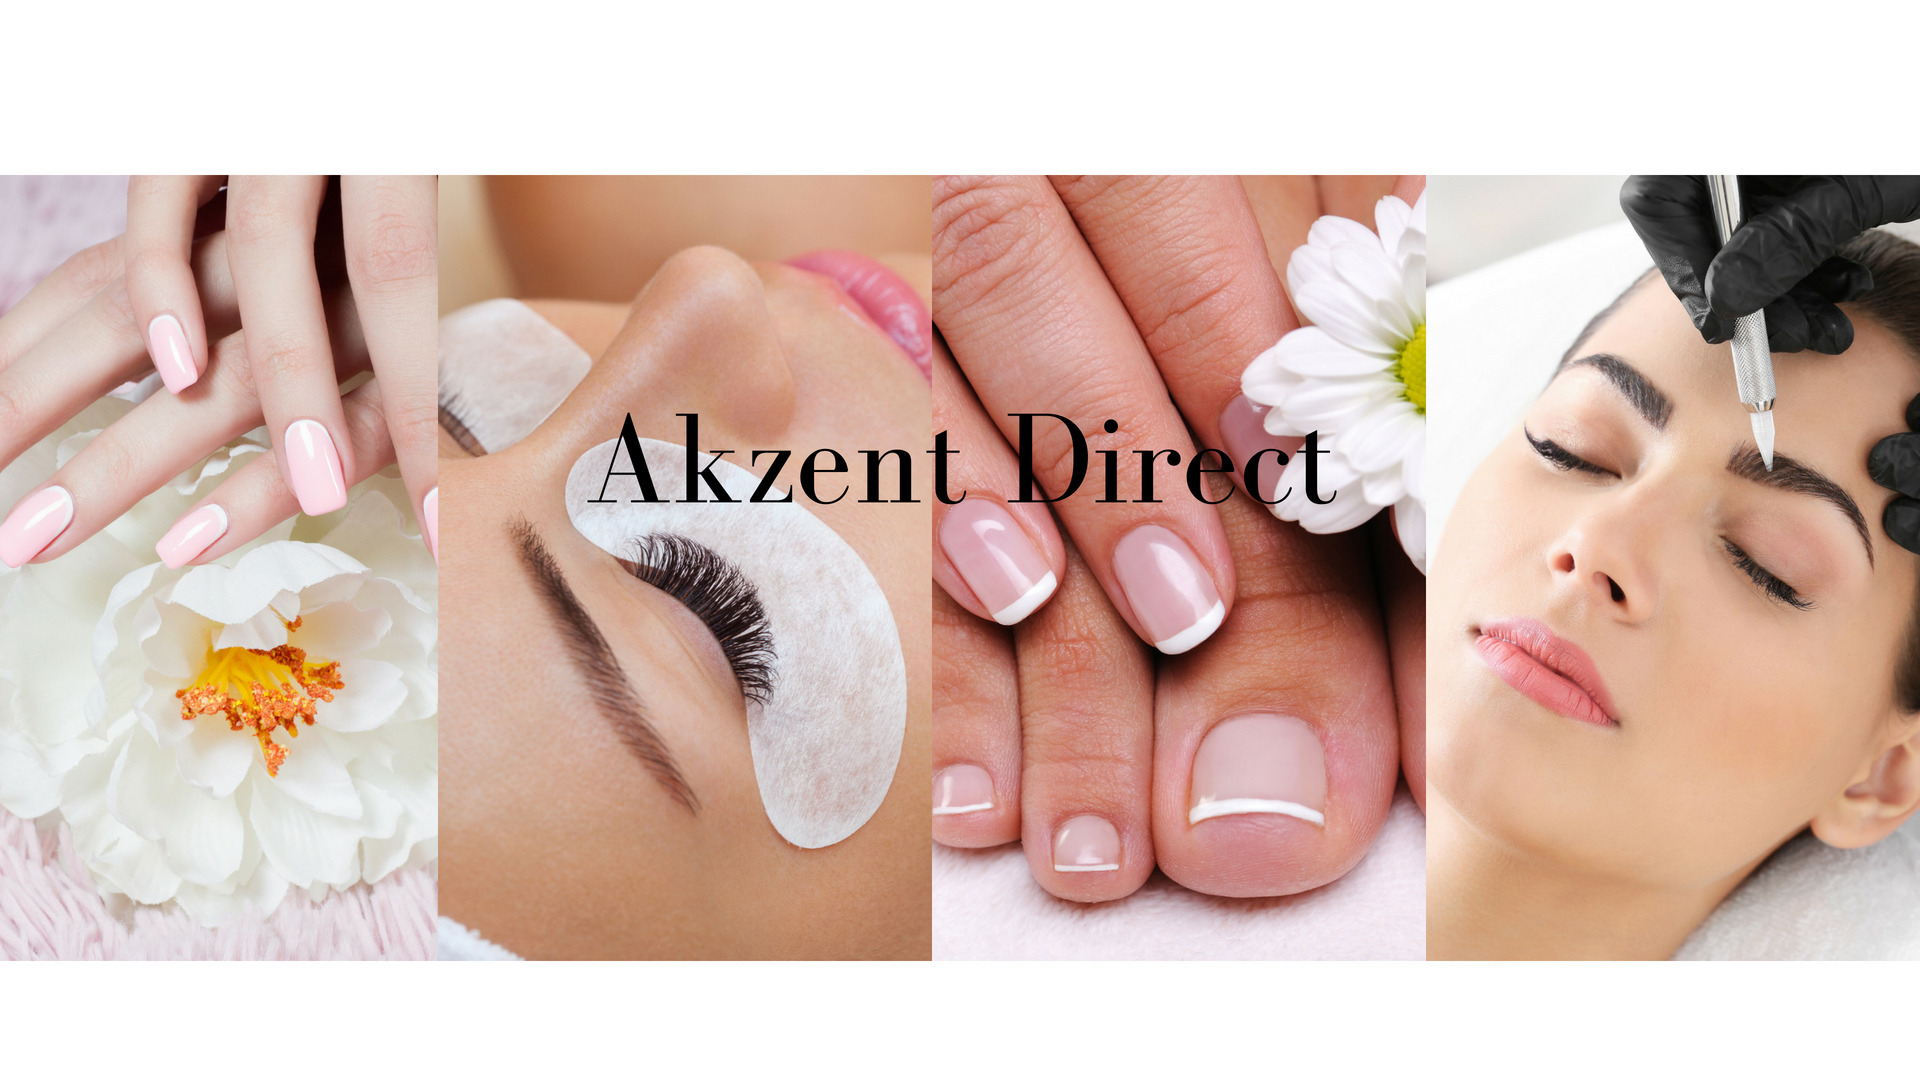 Akzent Direct